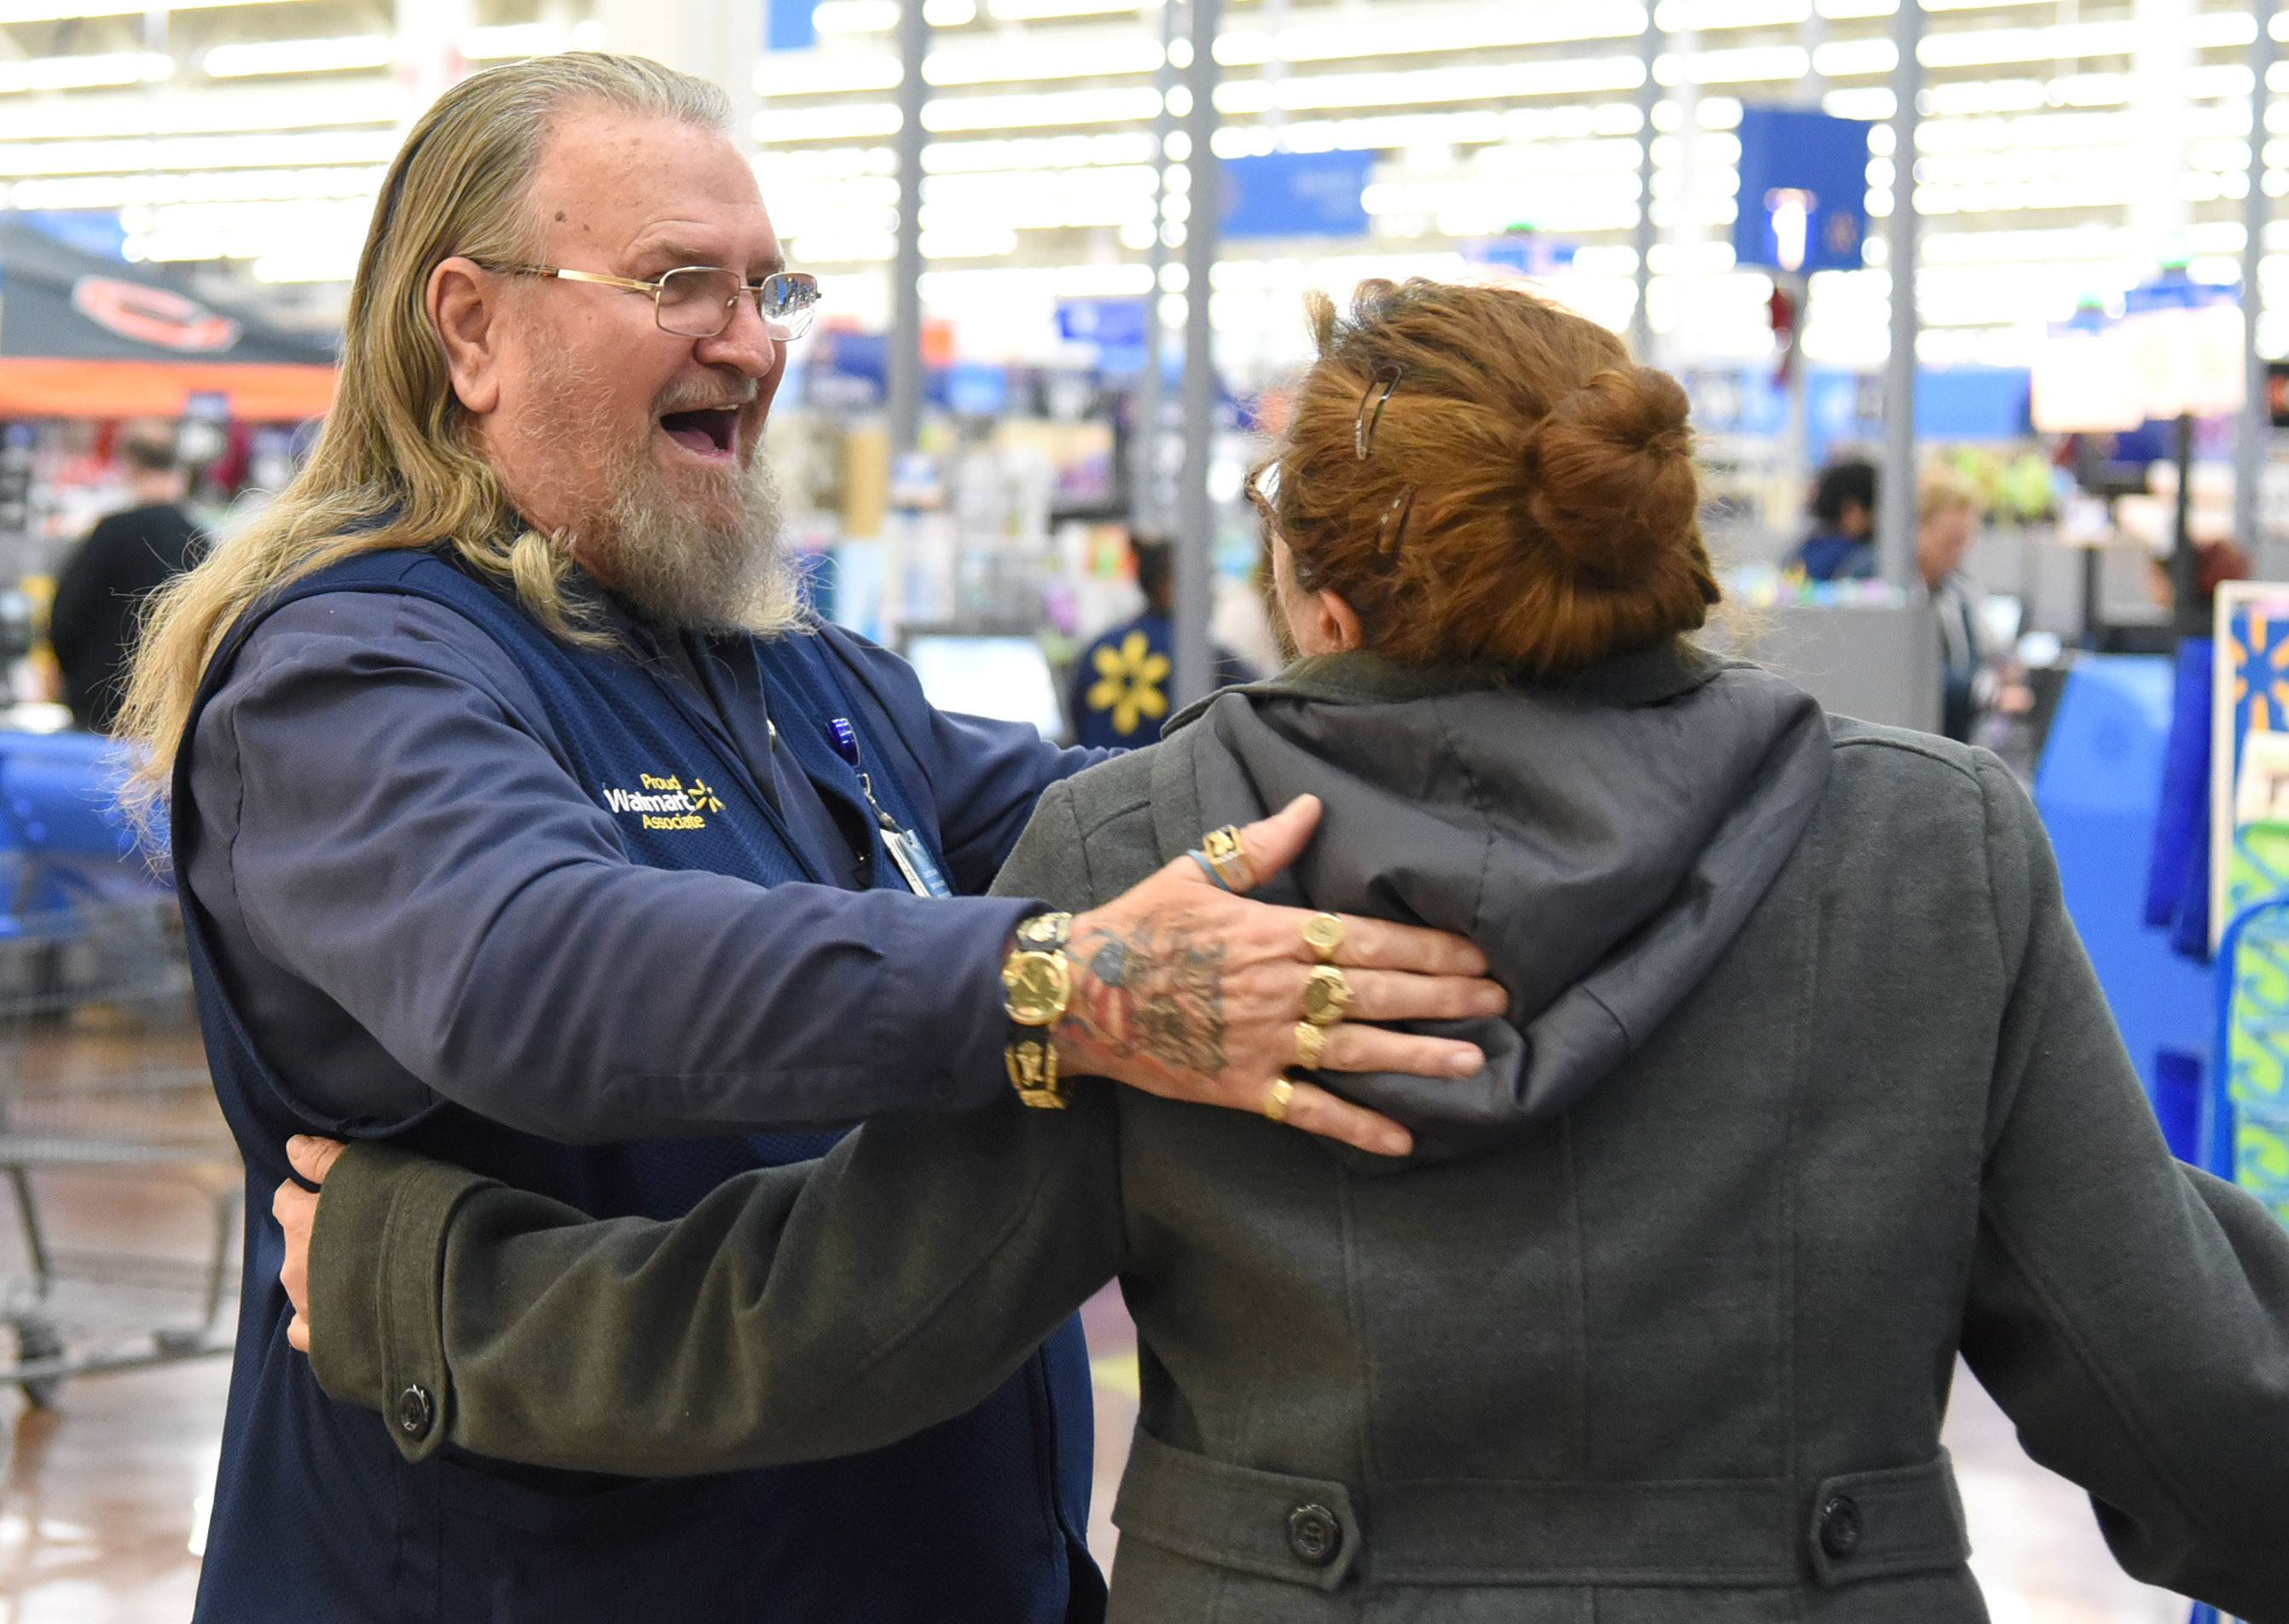 Wal-Mart greeter George Cornwell of Aurora gets a hug from co-worker Eva Reyna, also of Aurora, as she leaves work for the day.